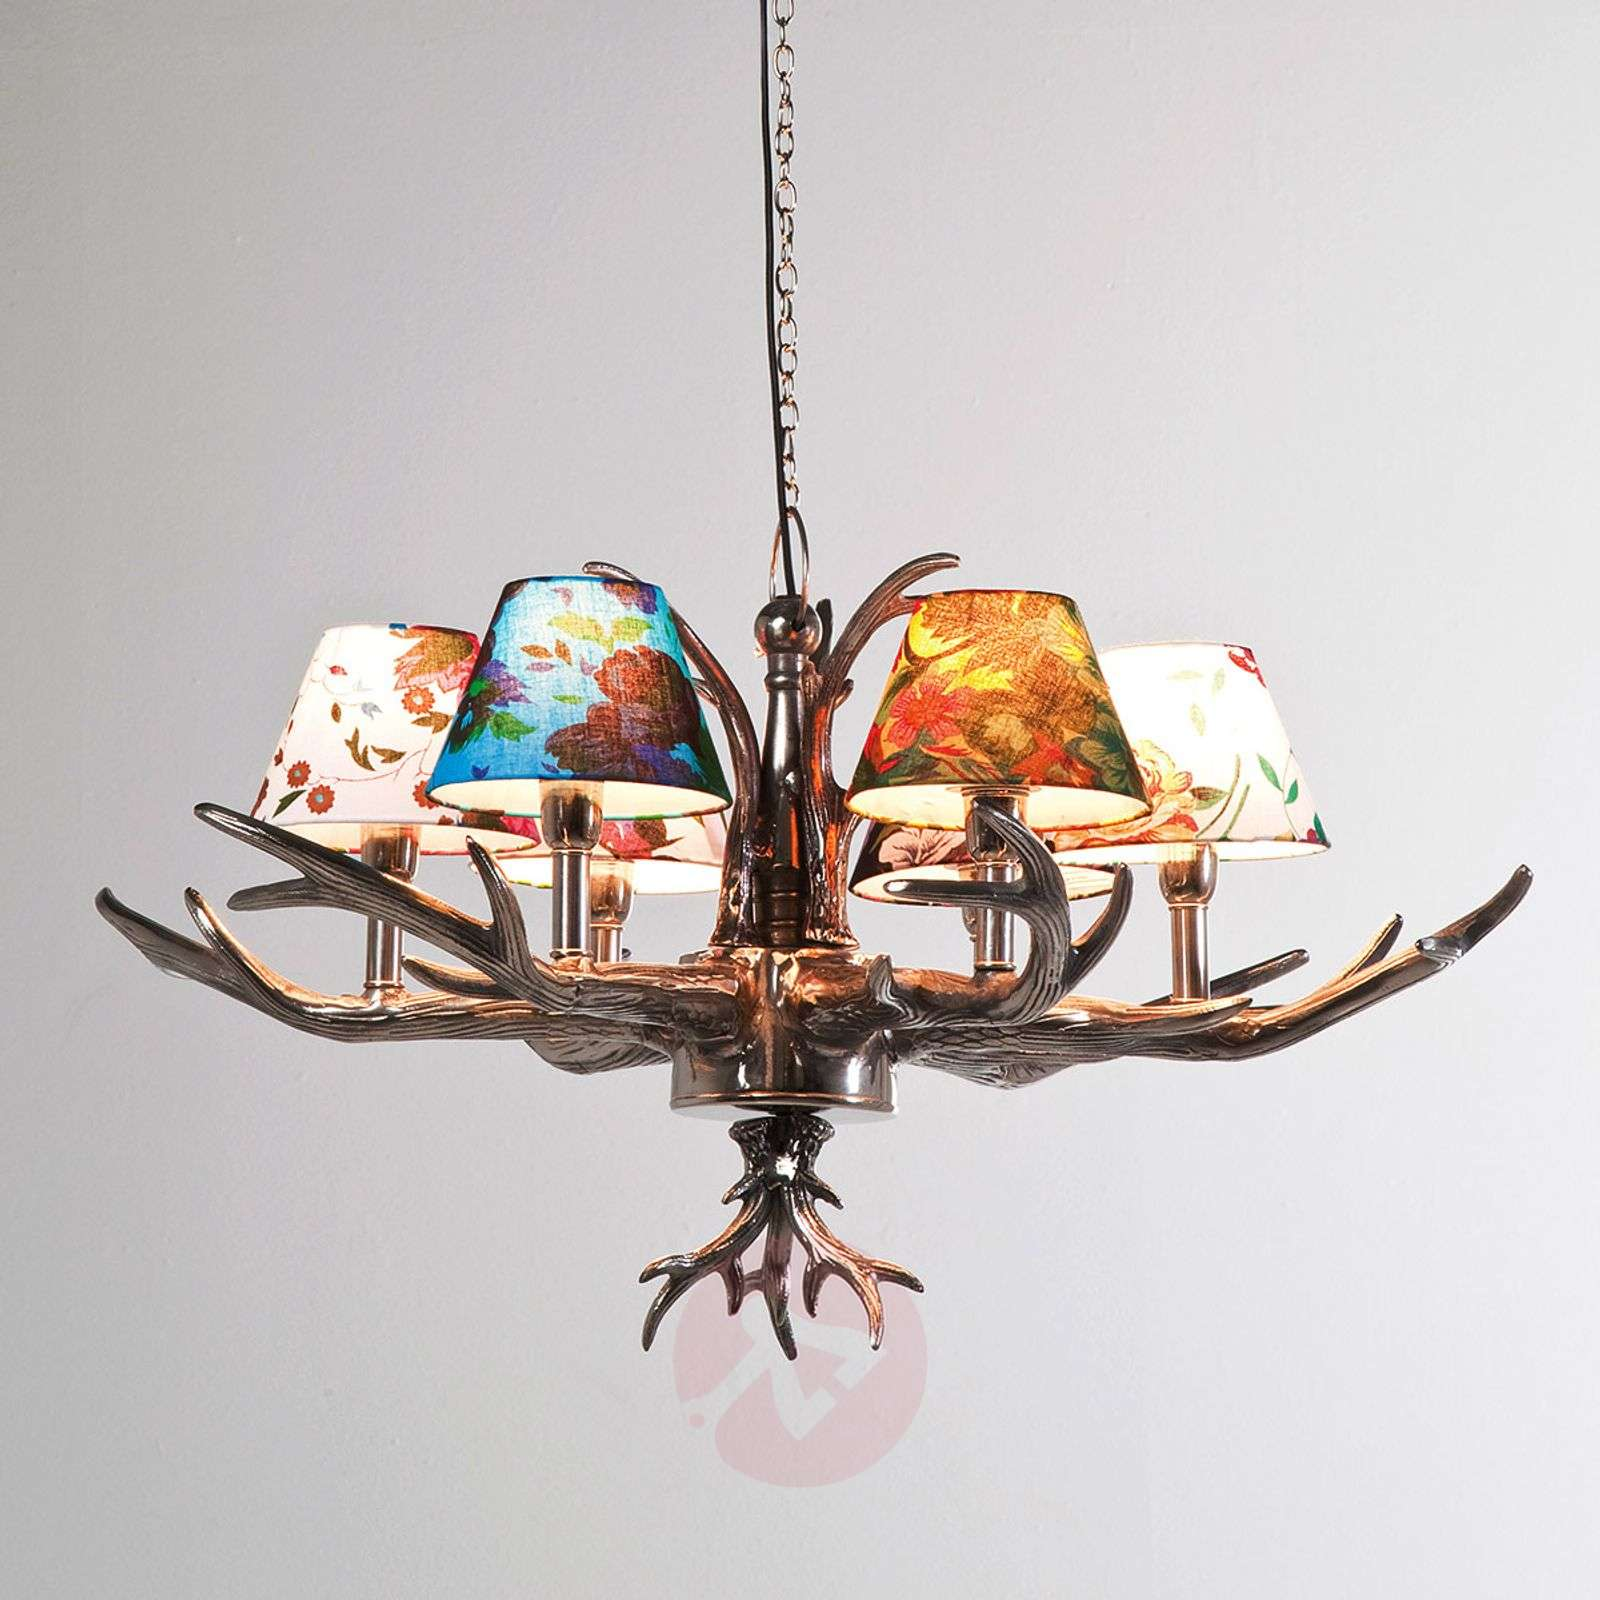 KARE Antler Flowers colourful hanging light-5517283-01